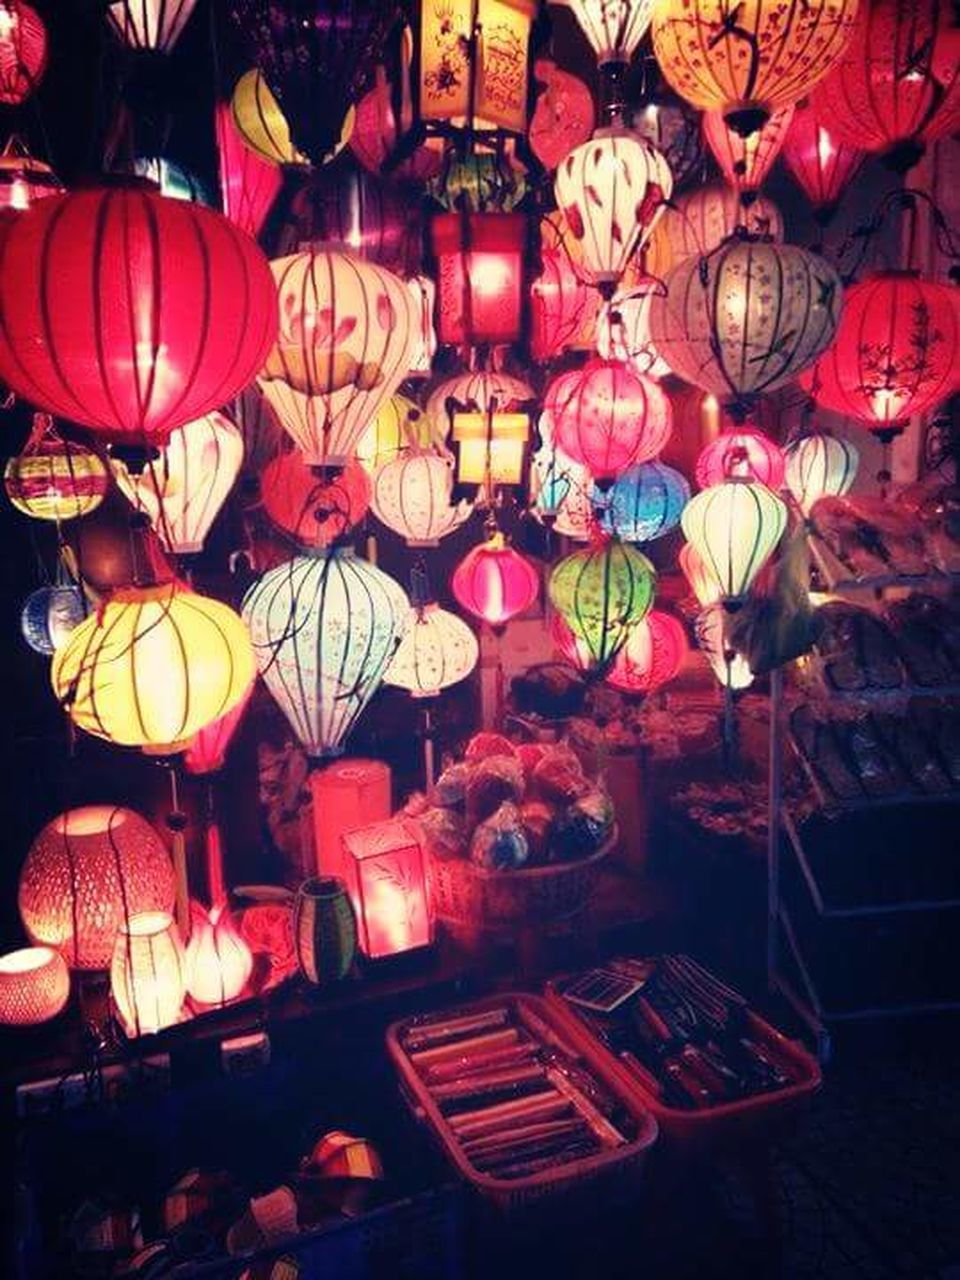 hanging, lantern, large group of objects, lighting equipment, choice, variation, no people, cultures, abundance, retail, multi colored, illuminated, indoors, night